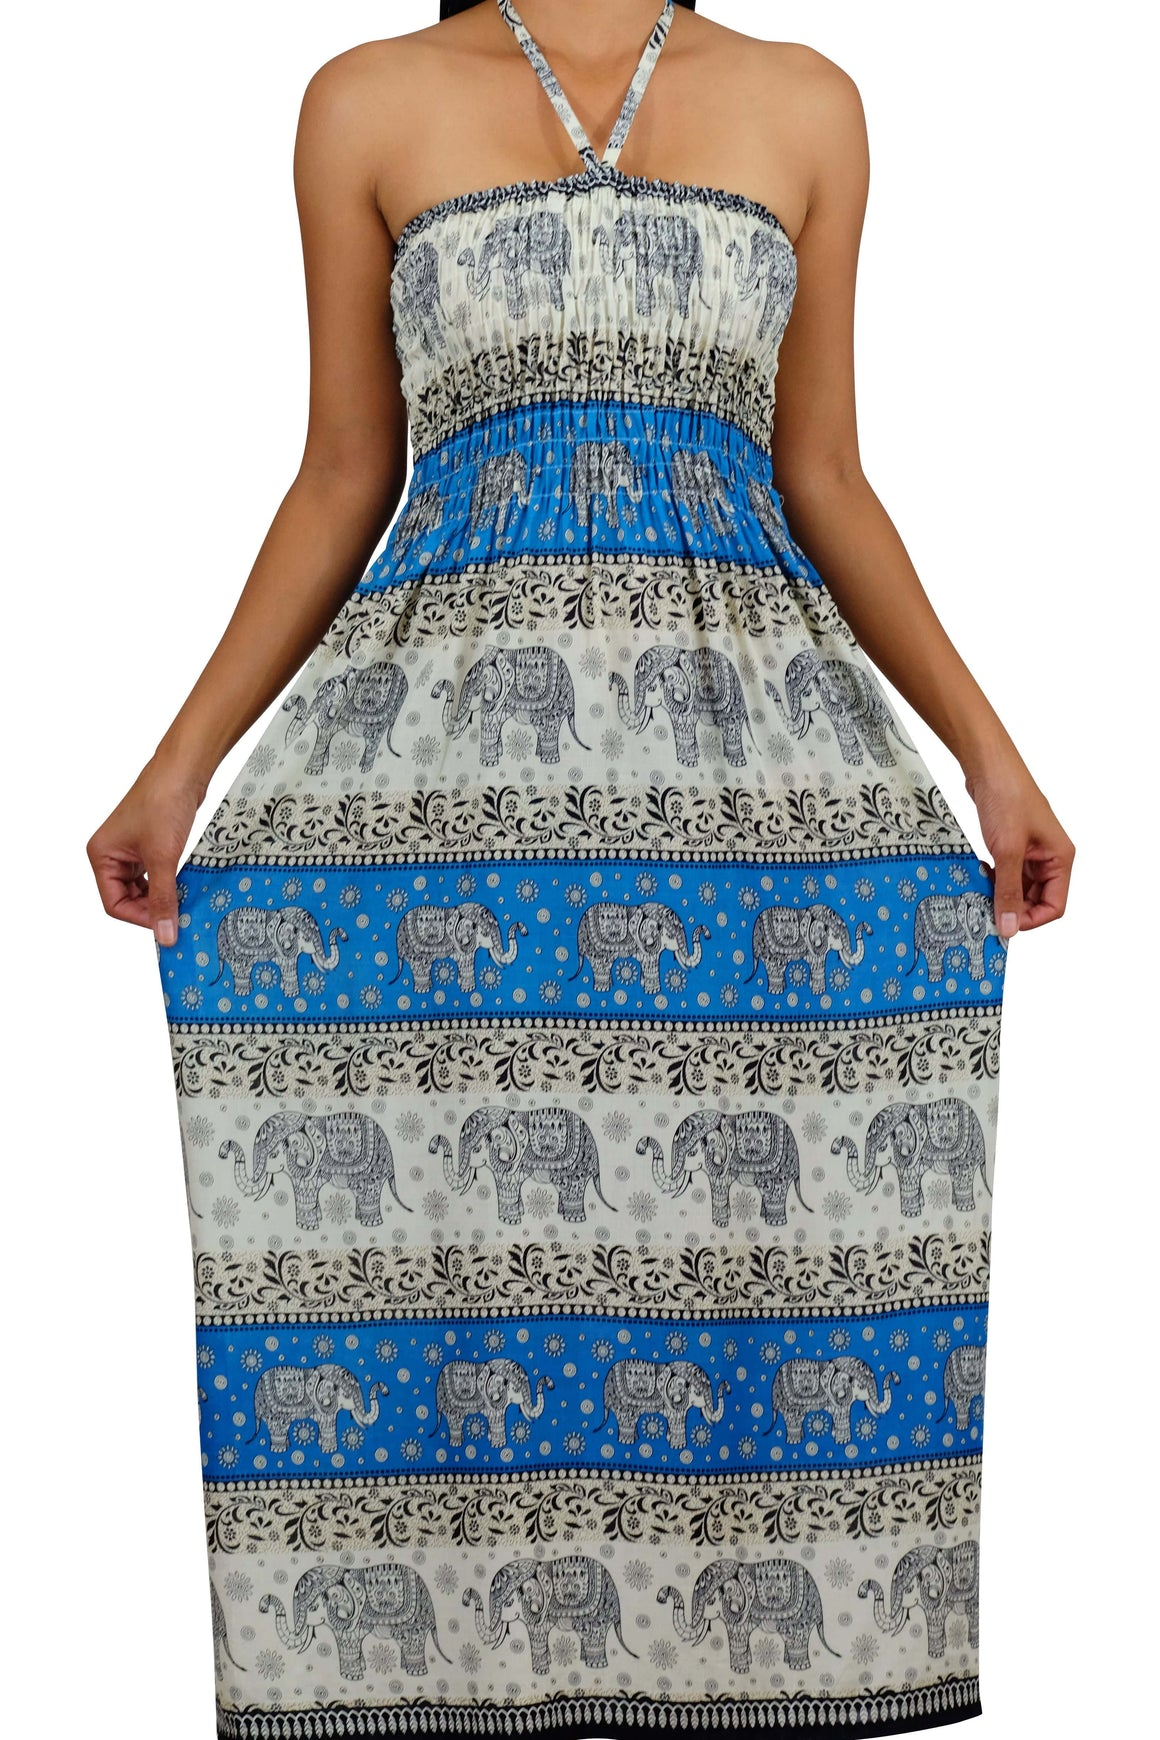 Elephant Shirt Store Dress Chang Phun Halter Elephant Dress White and Blue